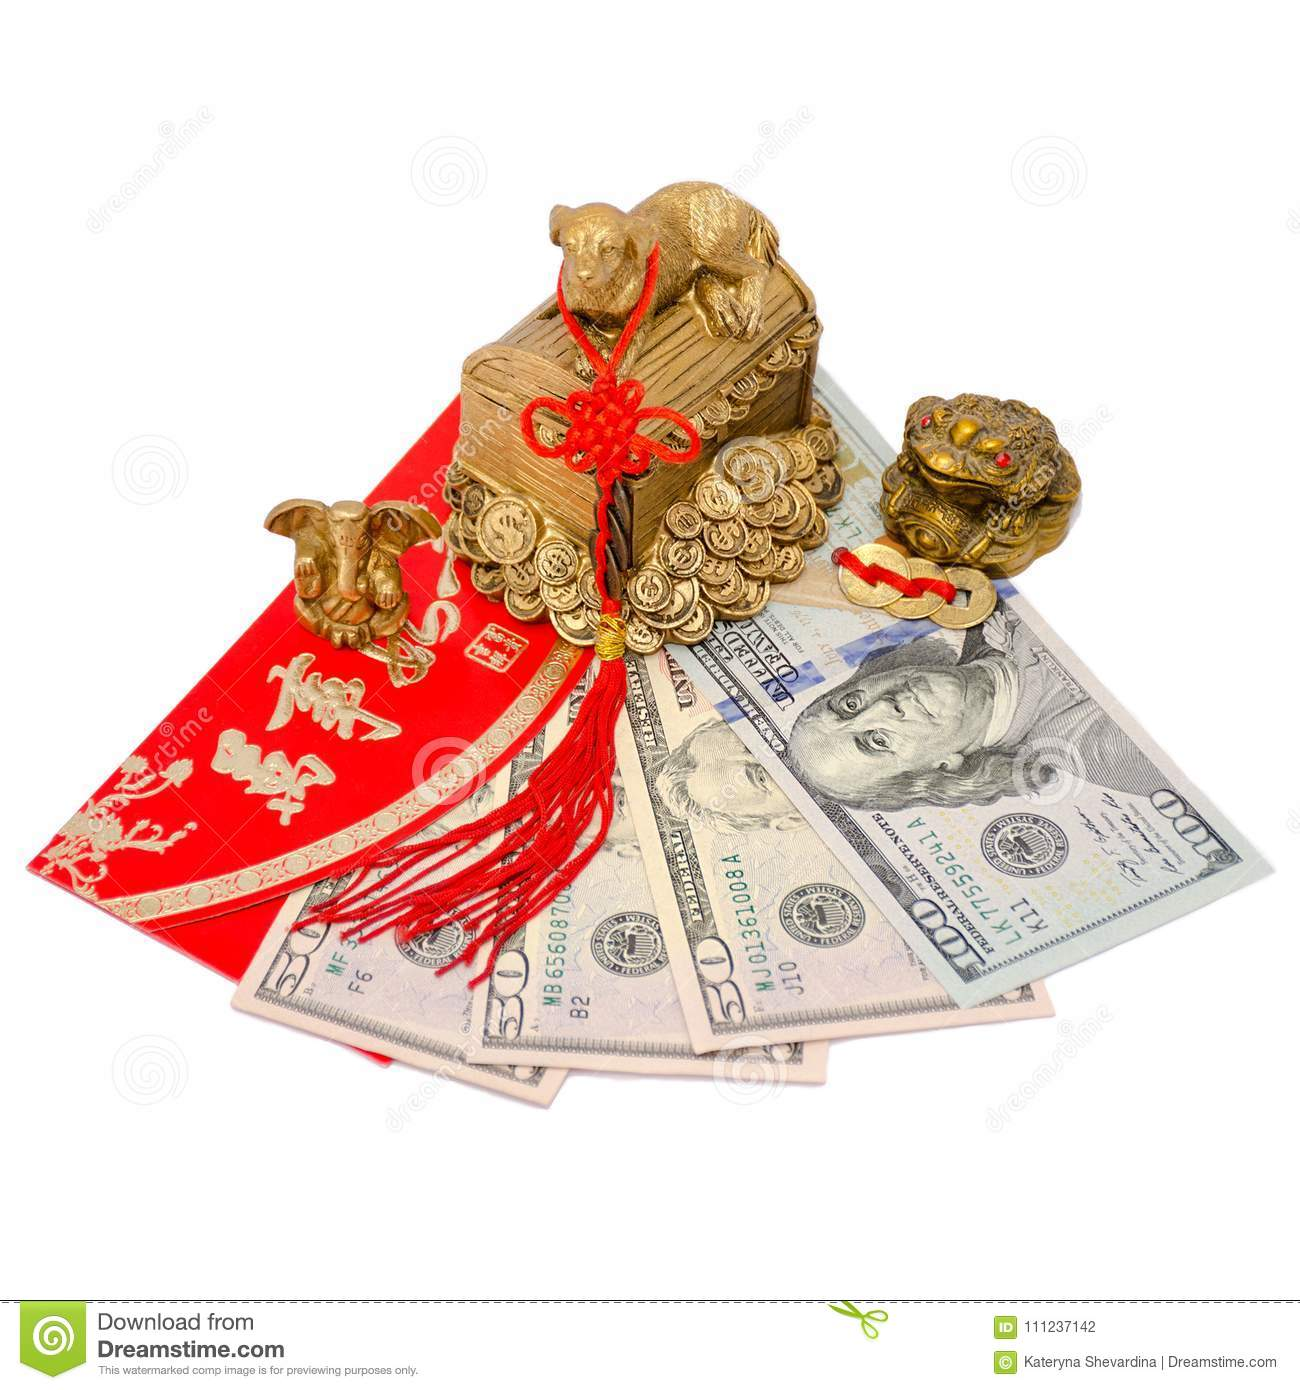 Feng Shui talismans attracting money and a successful business